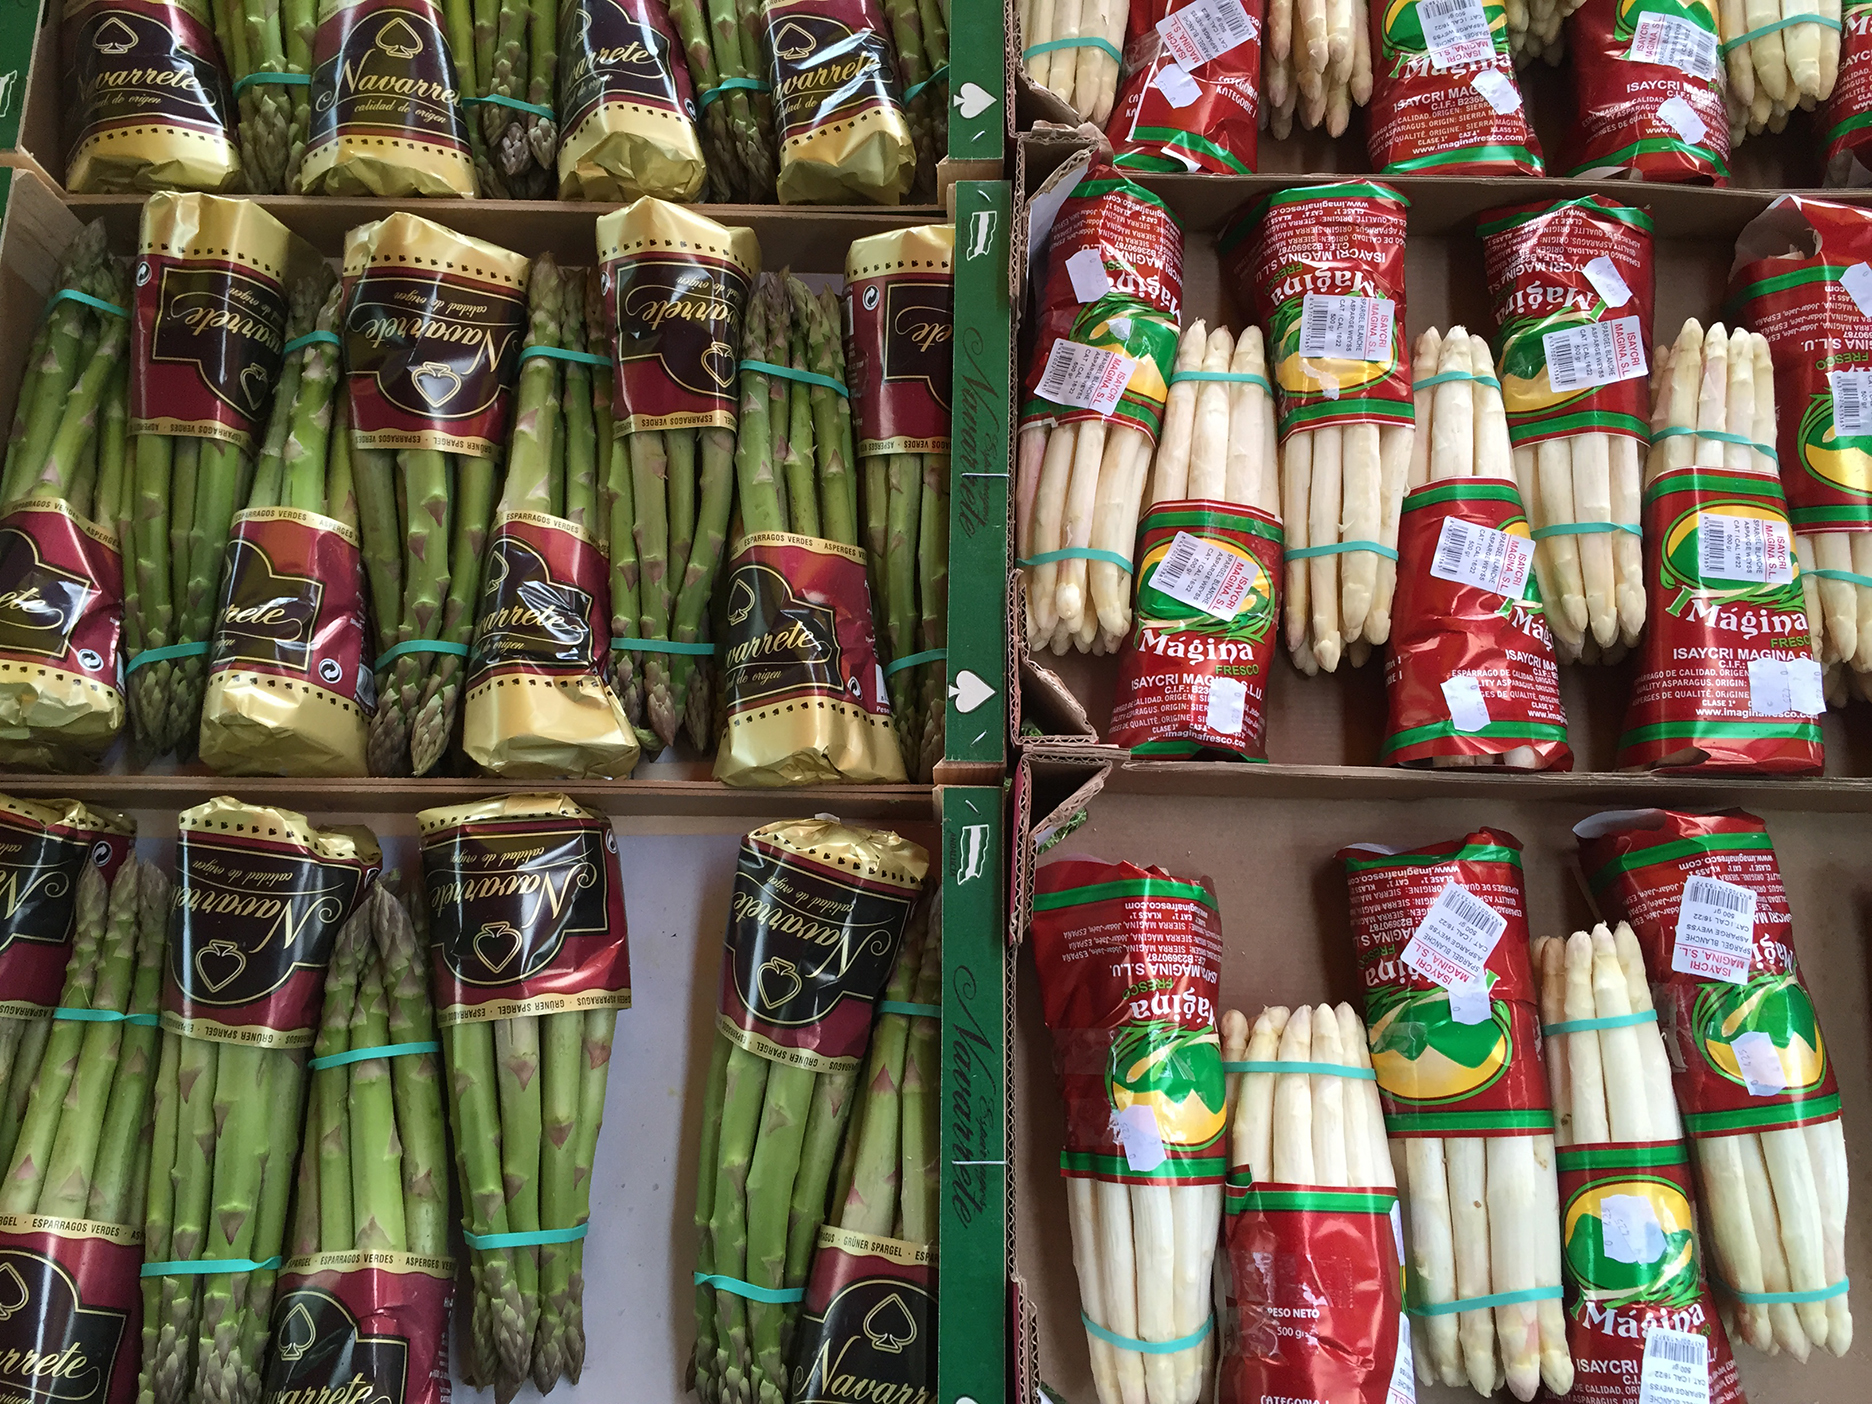 Organized display of white and green asparagus